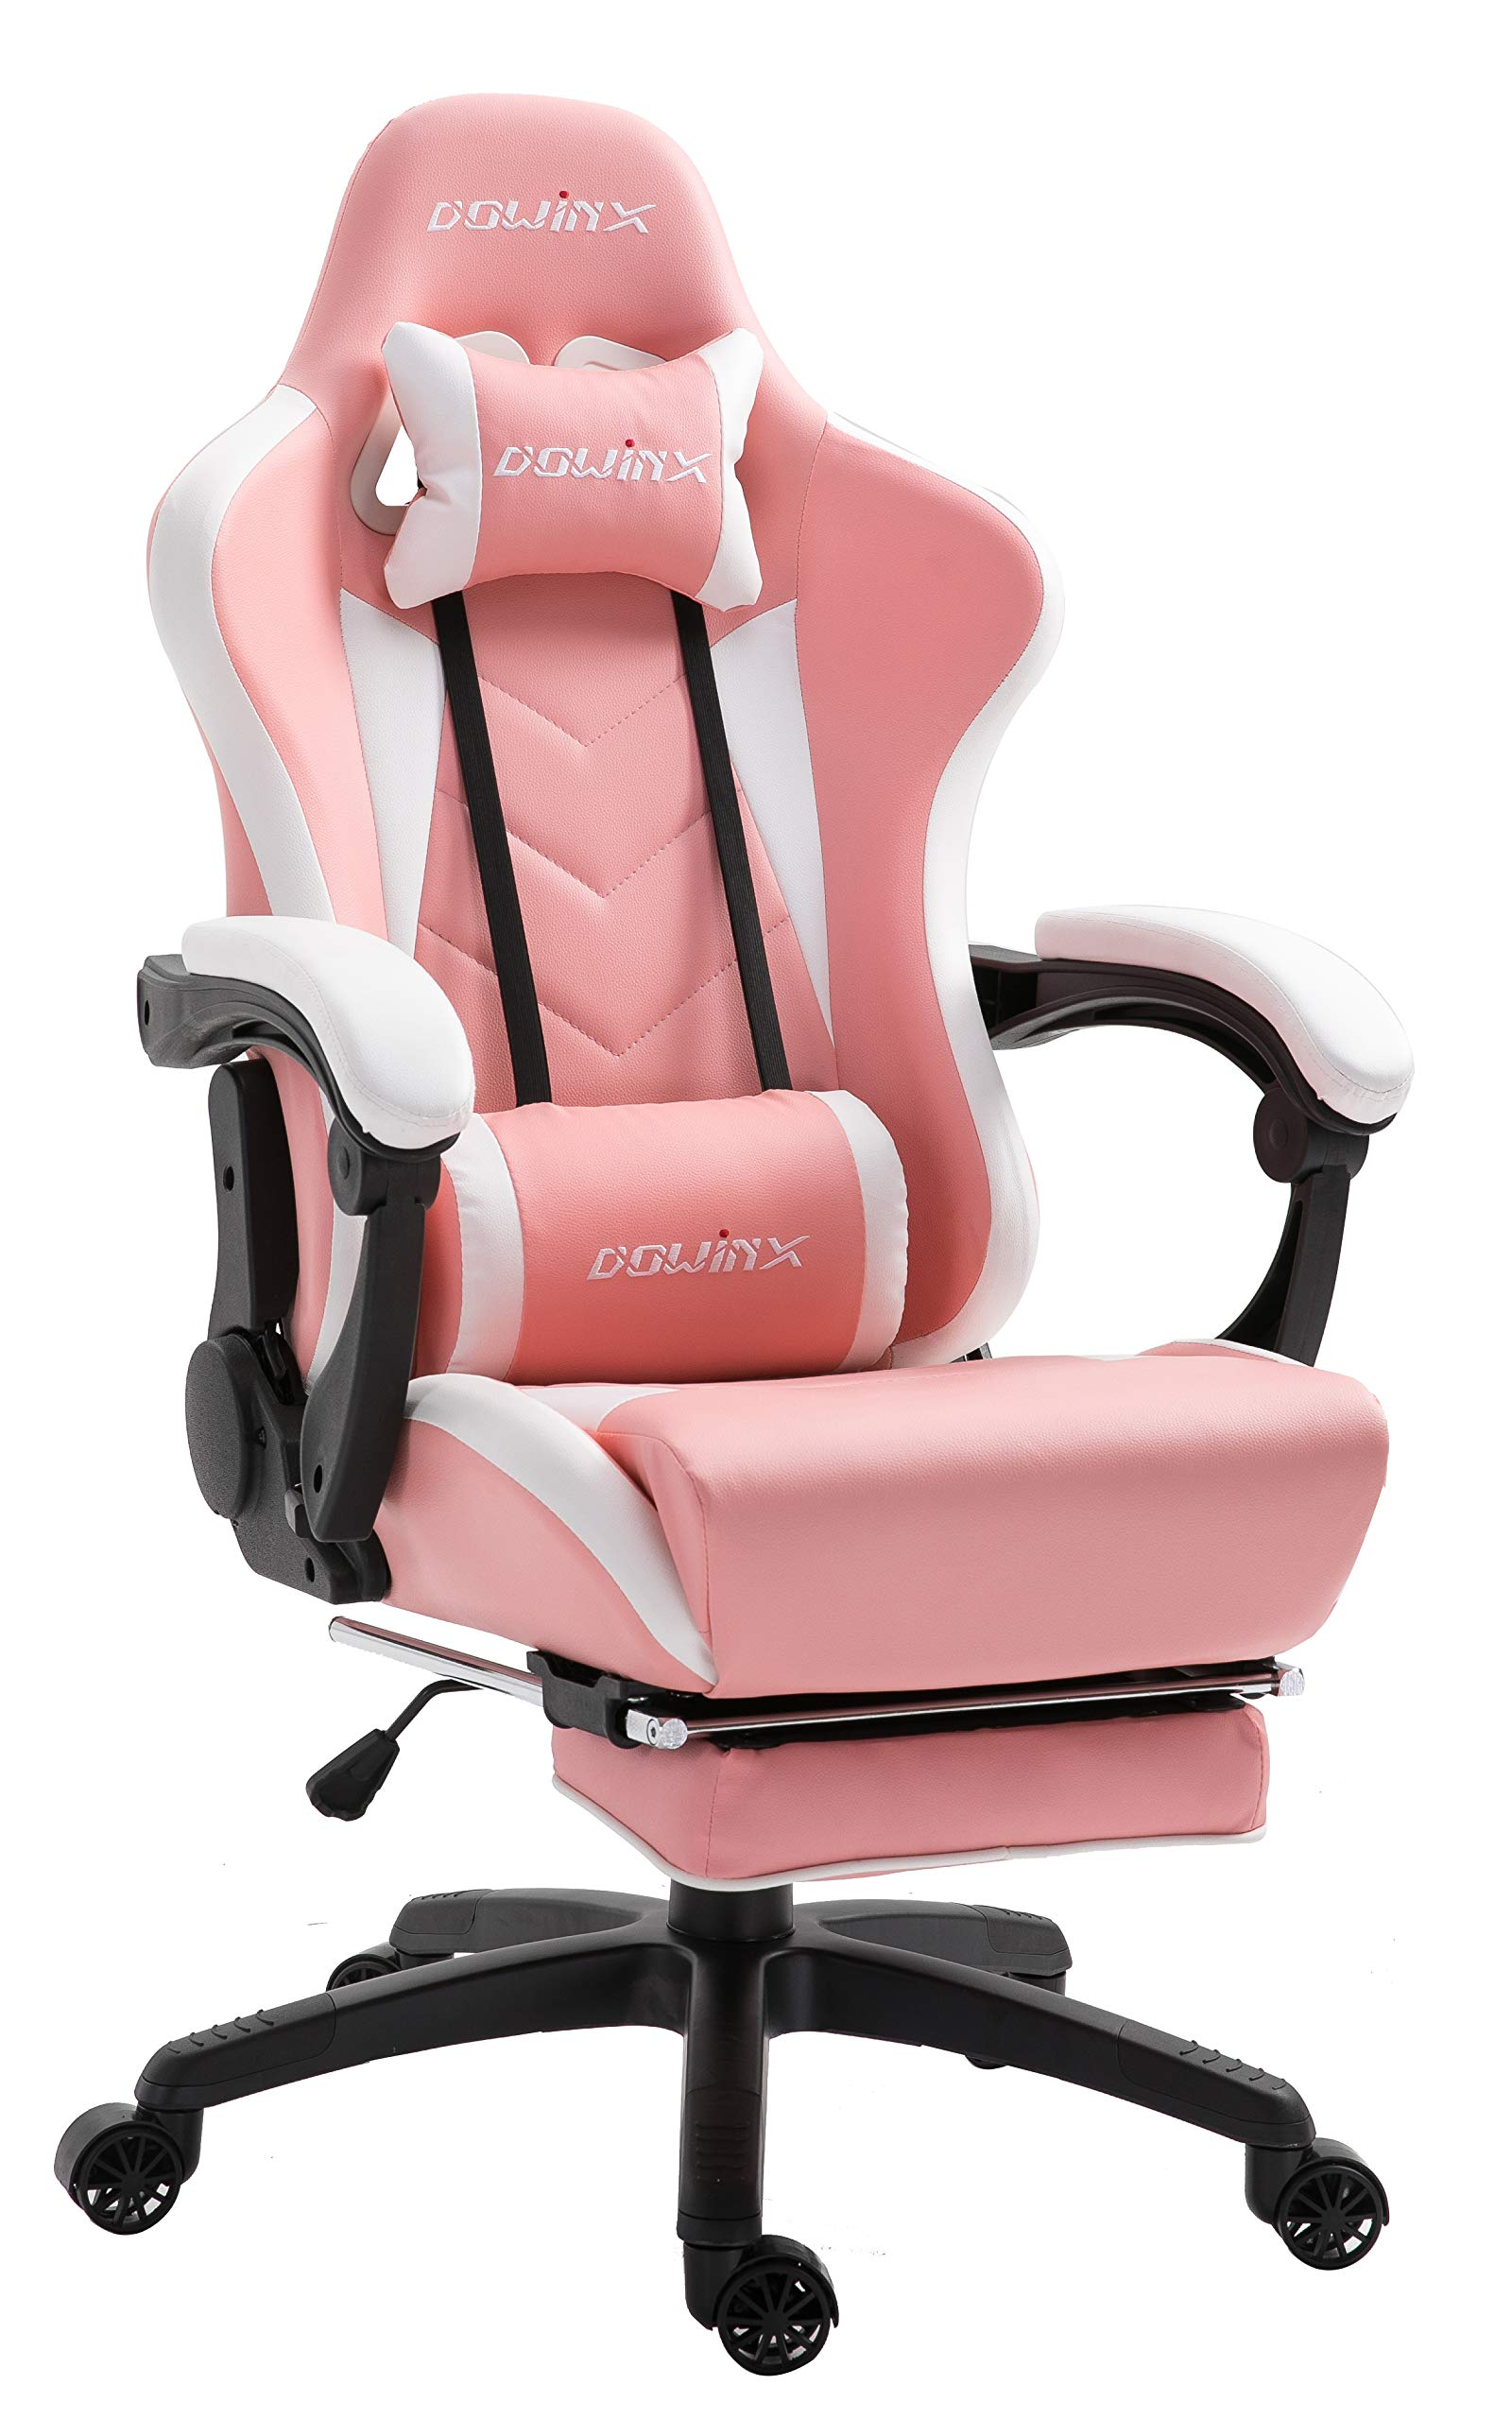 Dowinx Gaming Chair Ergonomic Racing Style Recliner with Massage Lumbar Support, Office Armchair for Computer PU Leather E-Sports Gamer Chairs with Retractable Footrest (White&Pink) by Dowinx